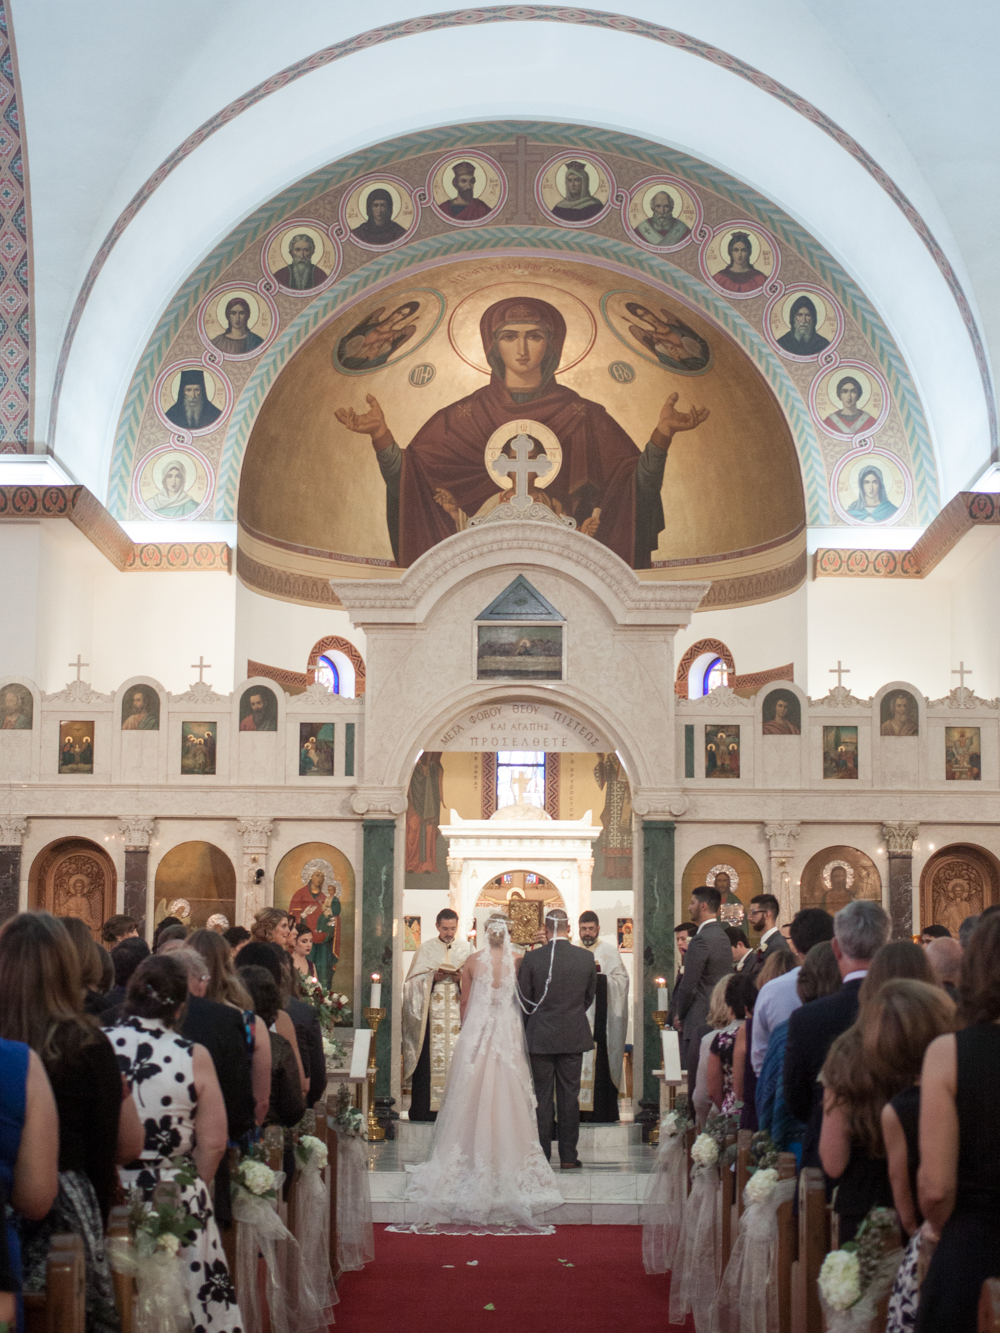 Houston wedding photographer - Christine Gosch - Houston film photographer - greek wedding in Houston - Annunciation Greek Orthodox church in Houston, Texas - Houston wedding planner -28.jpg